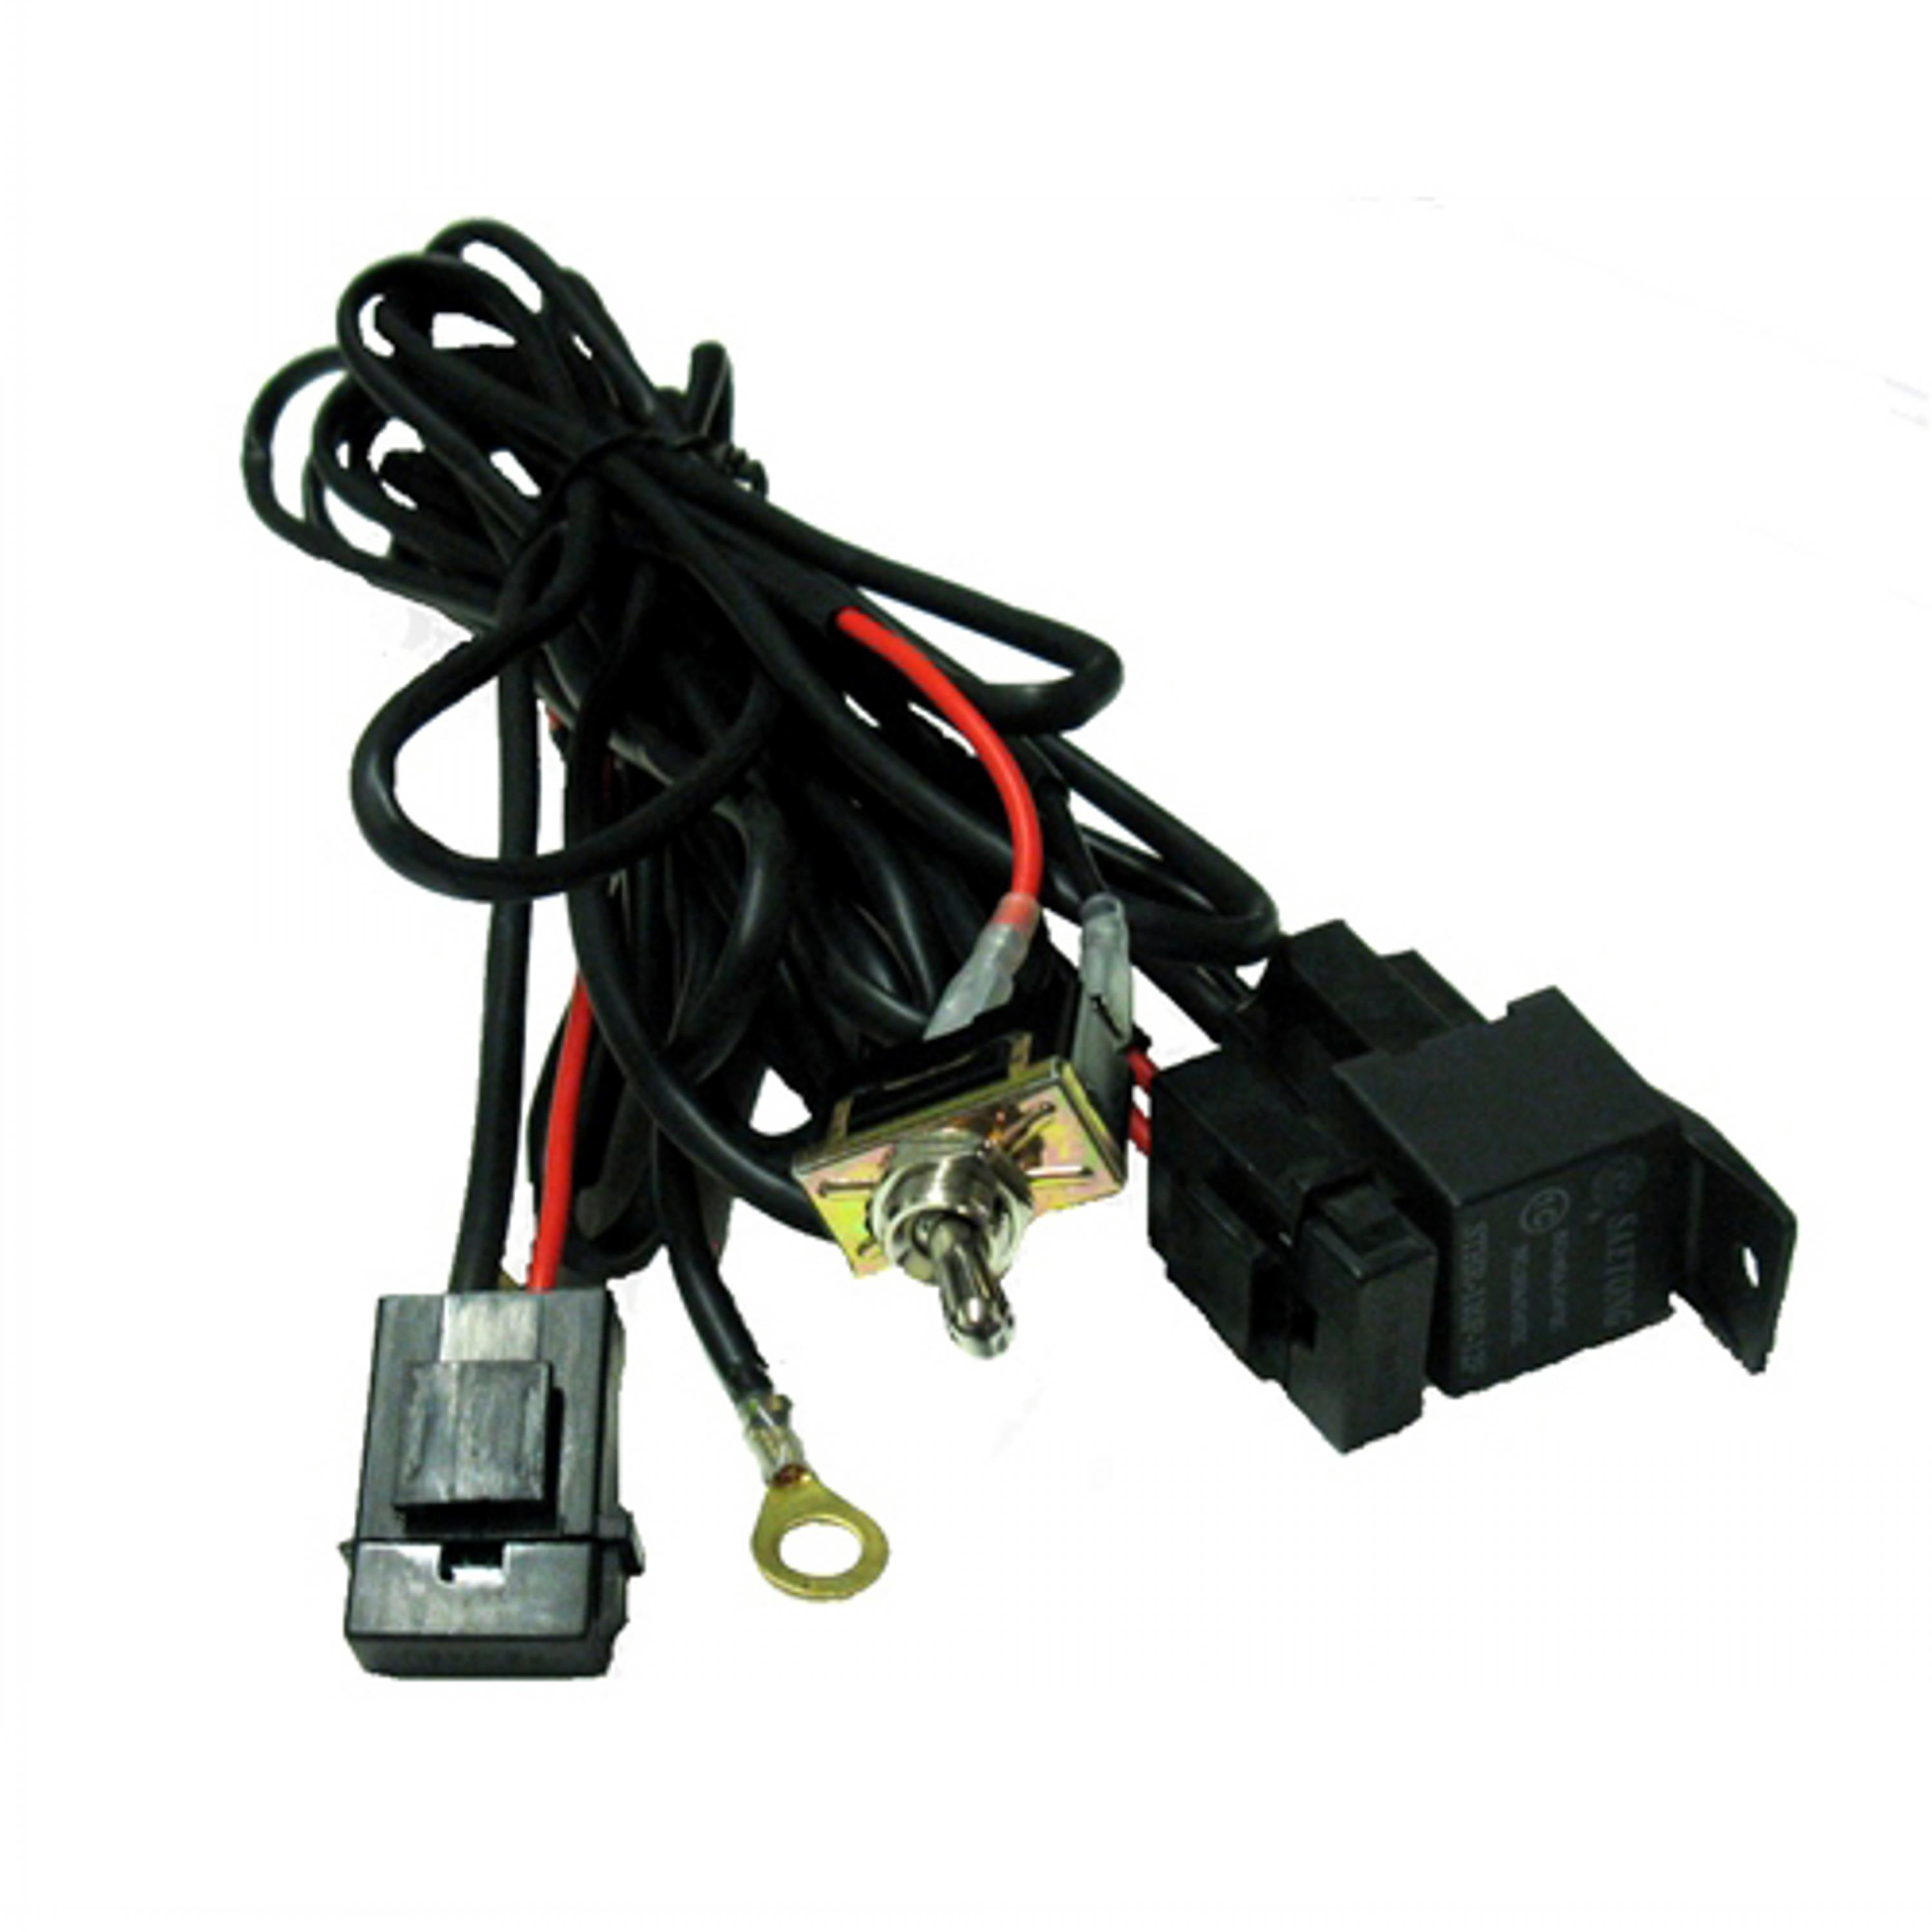 2 To 1 Deutsch Connector For Driving Light Wiring Harness Manual Guide